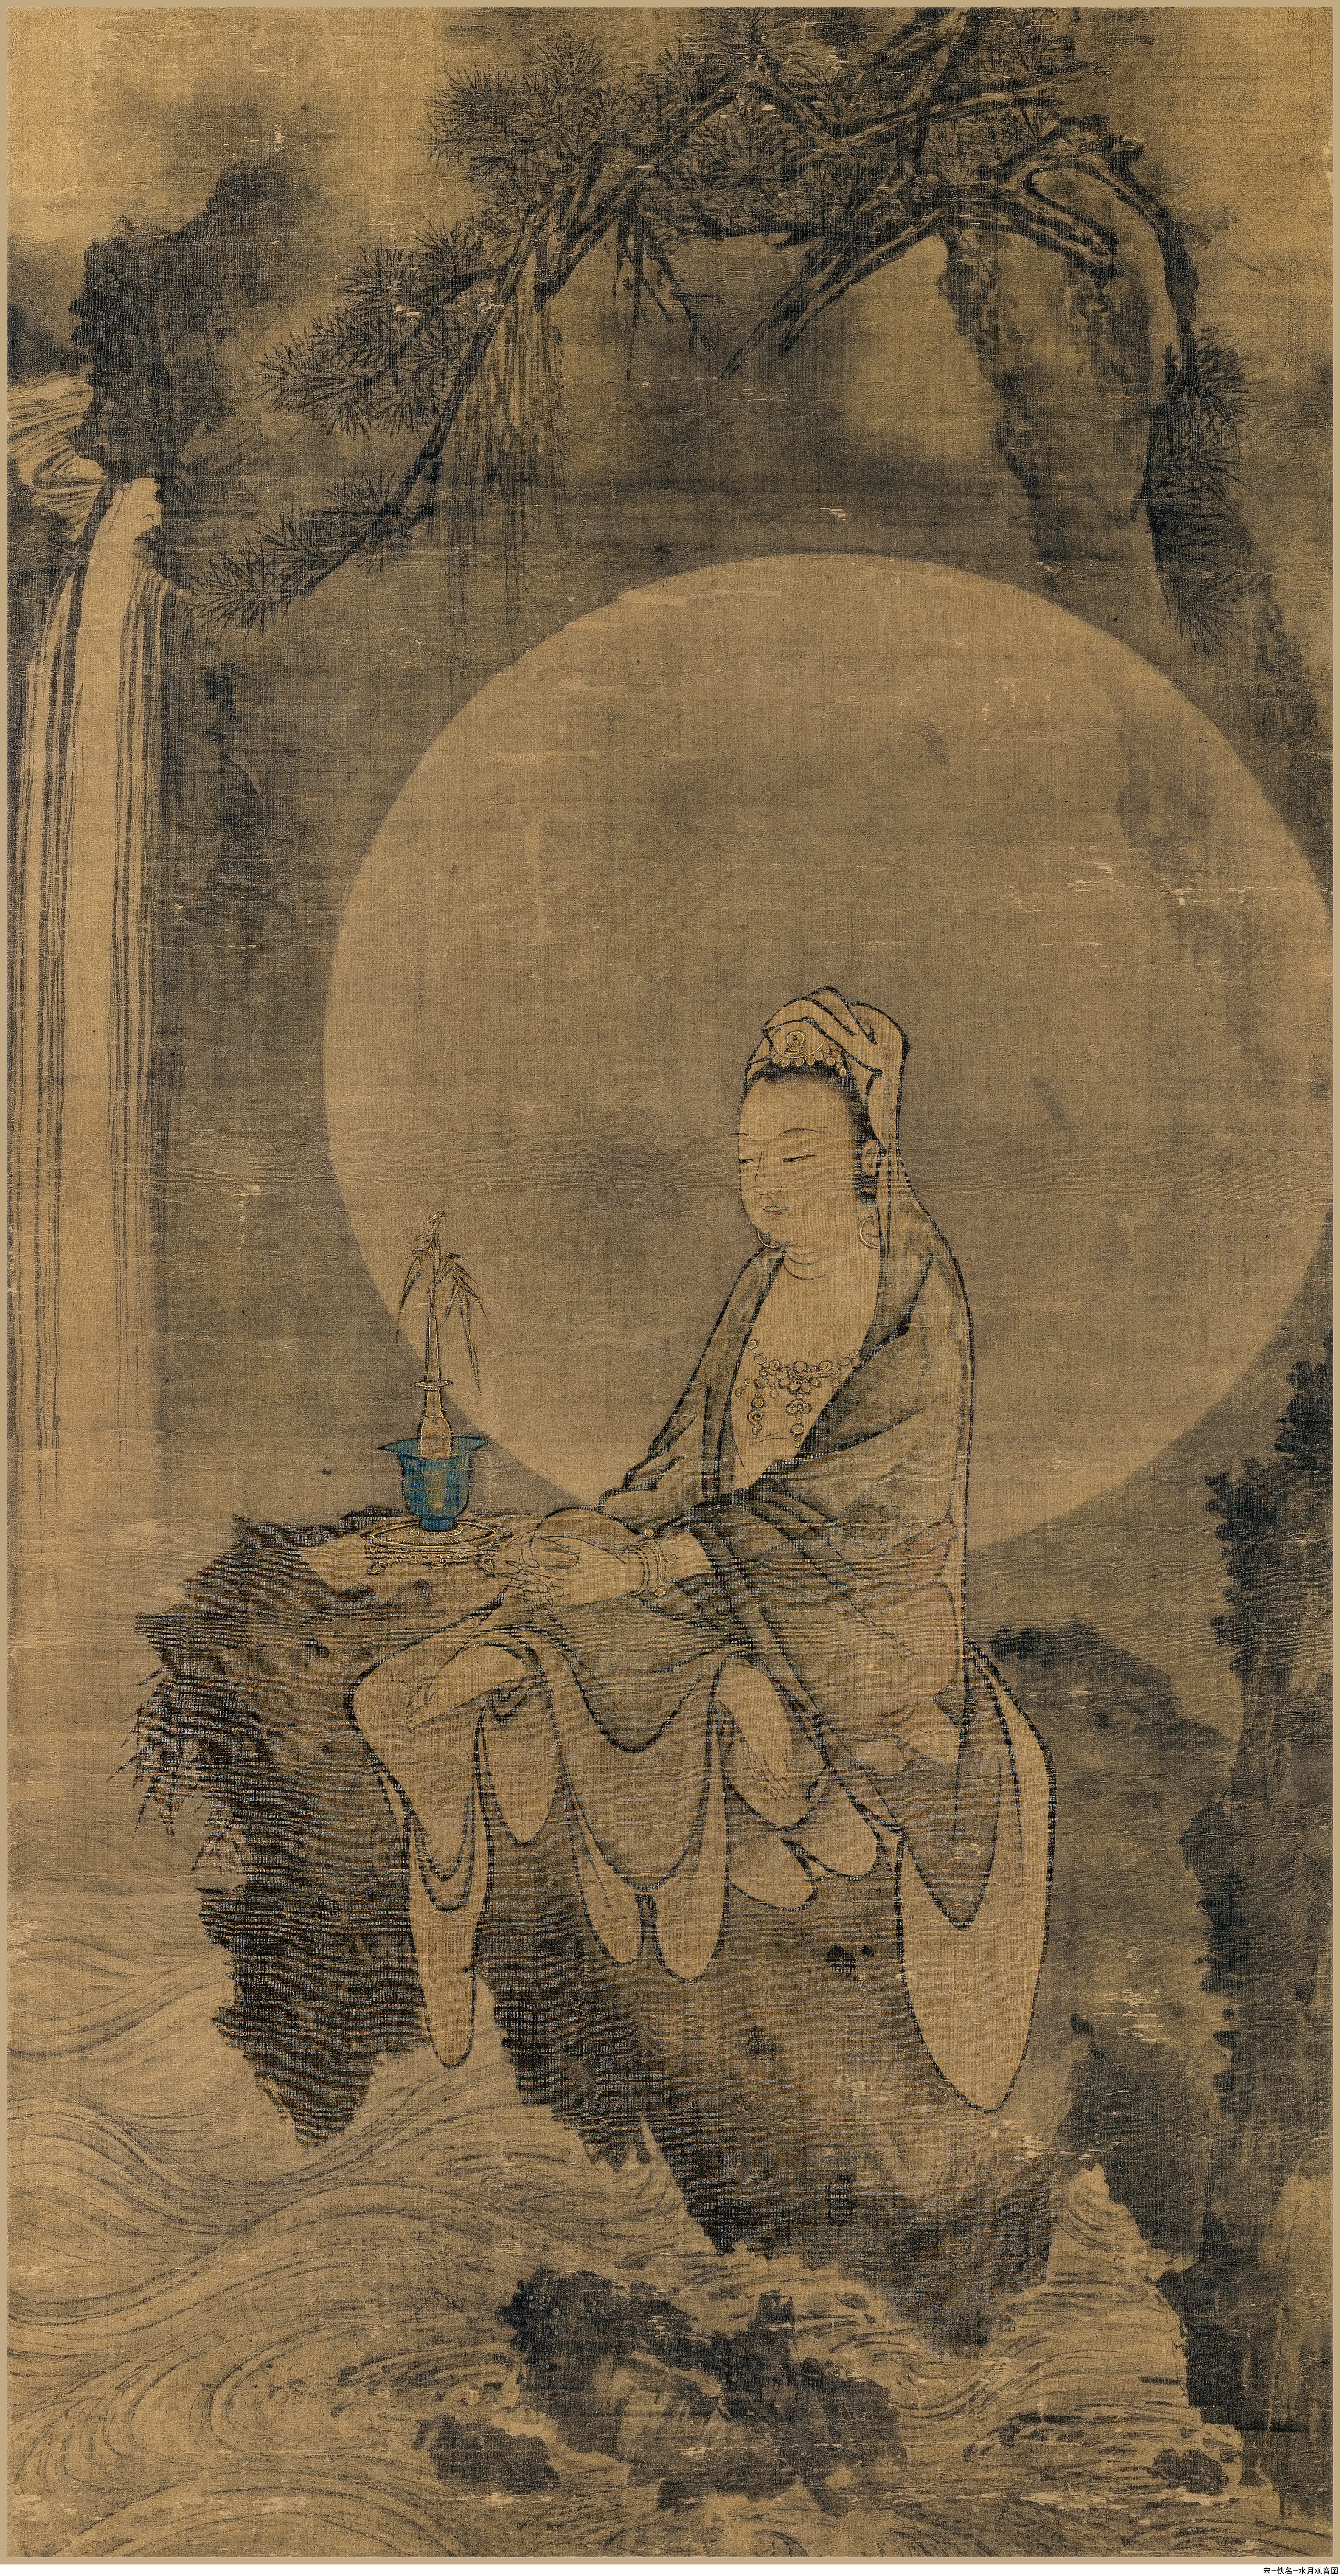 Water-Moon Avalokiteshvara